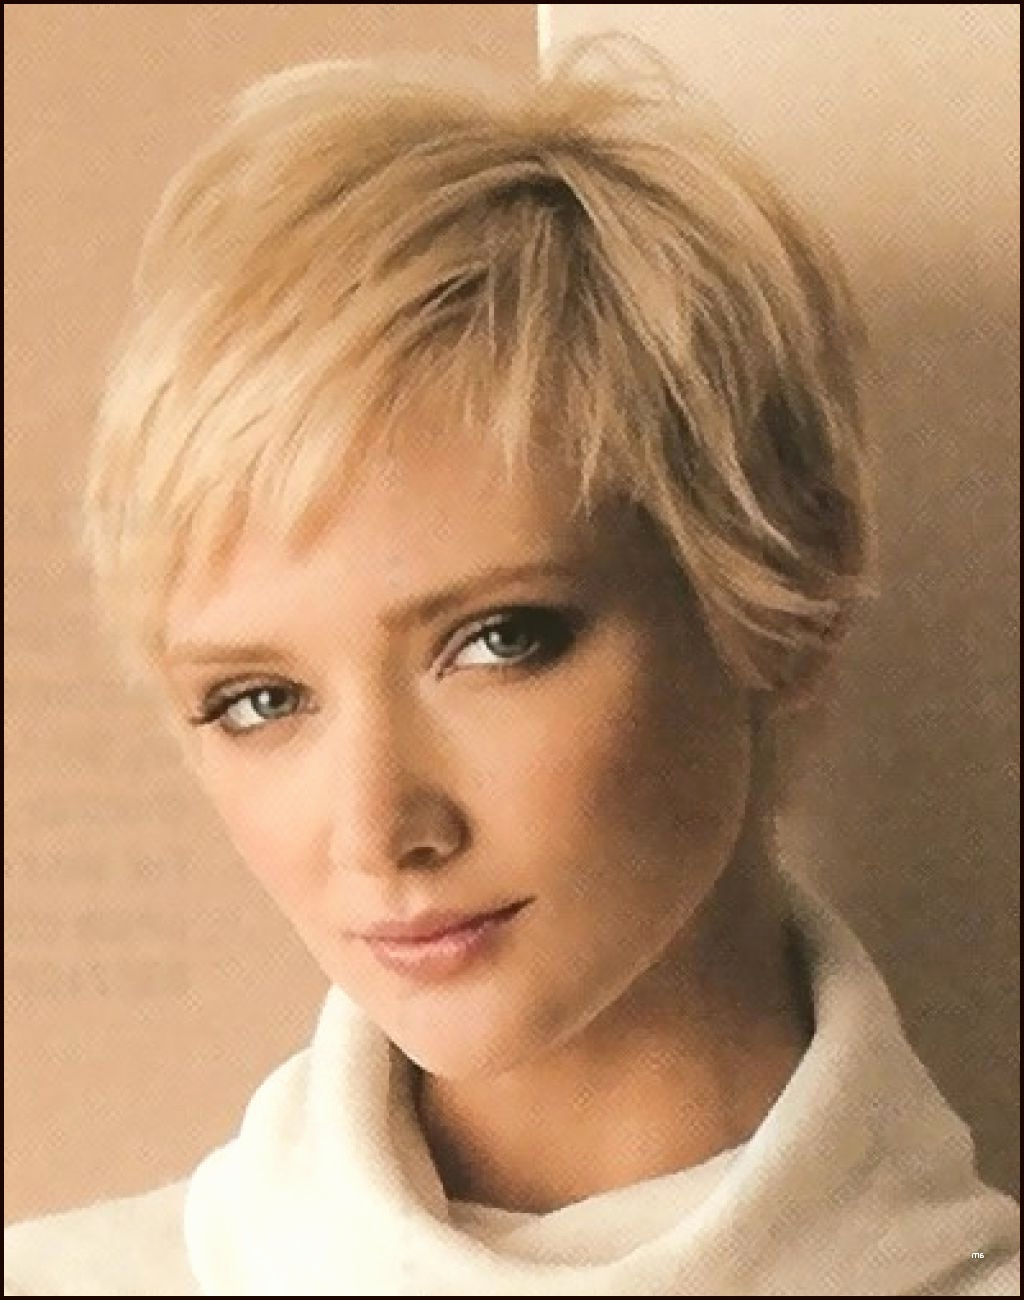 Short Hairstyles For Thin Fine Hair Over 60 Luxury Short Women Cuts Within Short Hairstyles For Thin Fine Hair (View 8 of 25)